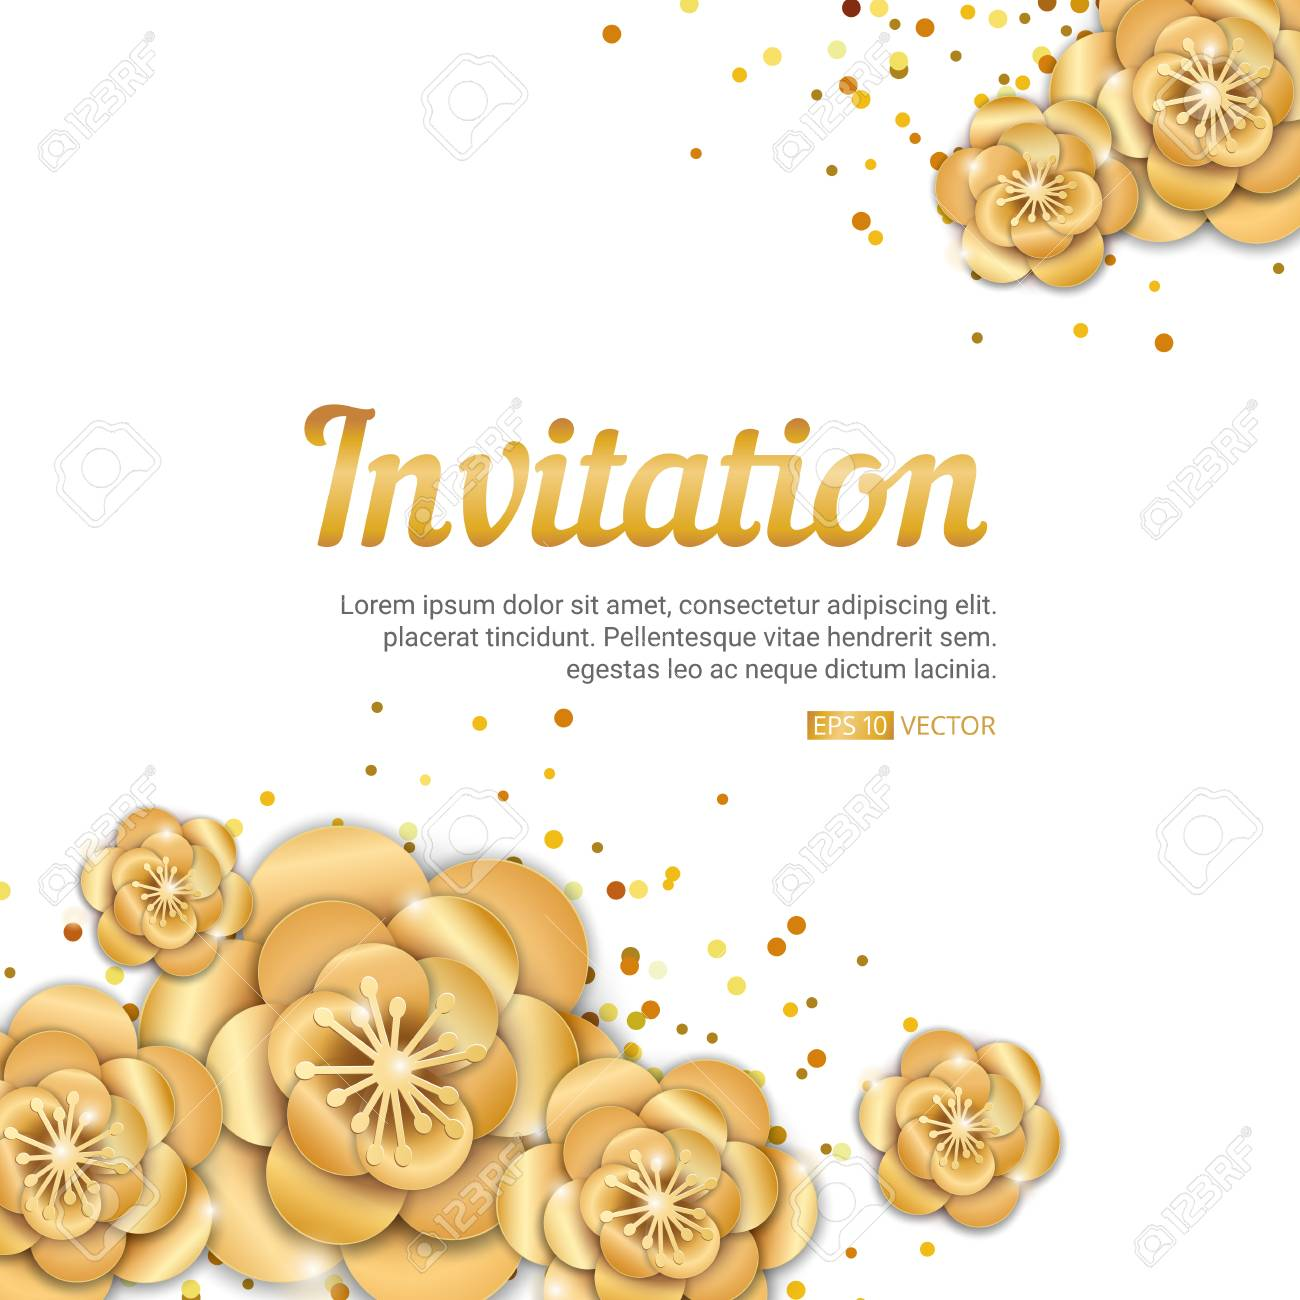 Gold lotus flower invitation banner spring flower invitation gold lotus flower invitation banner spring flower invitation background paper art flowers template for stopboris Images